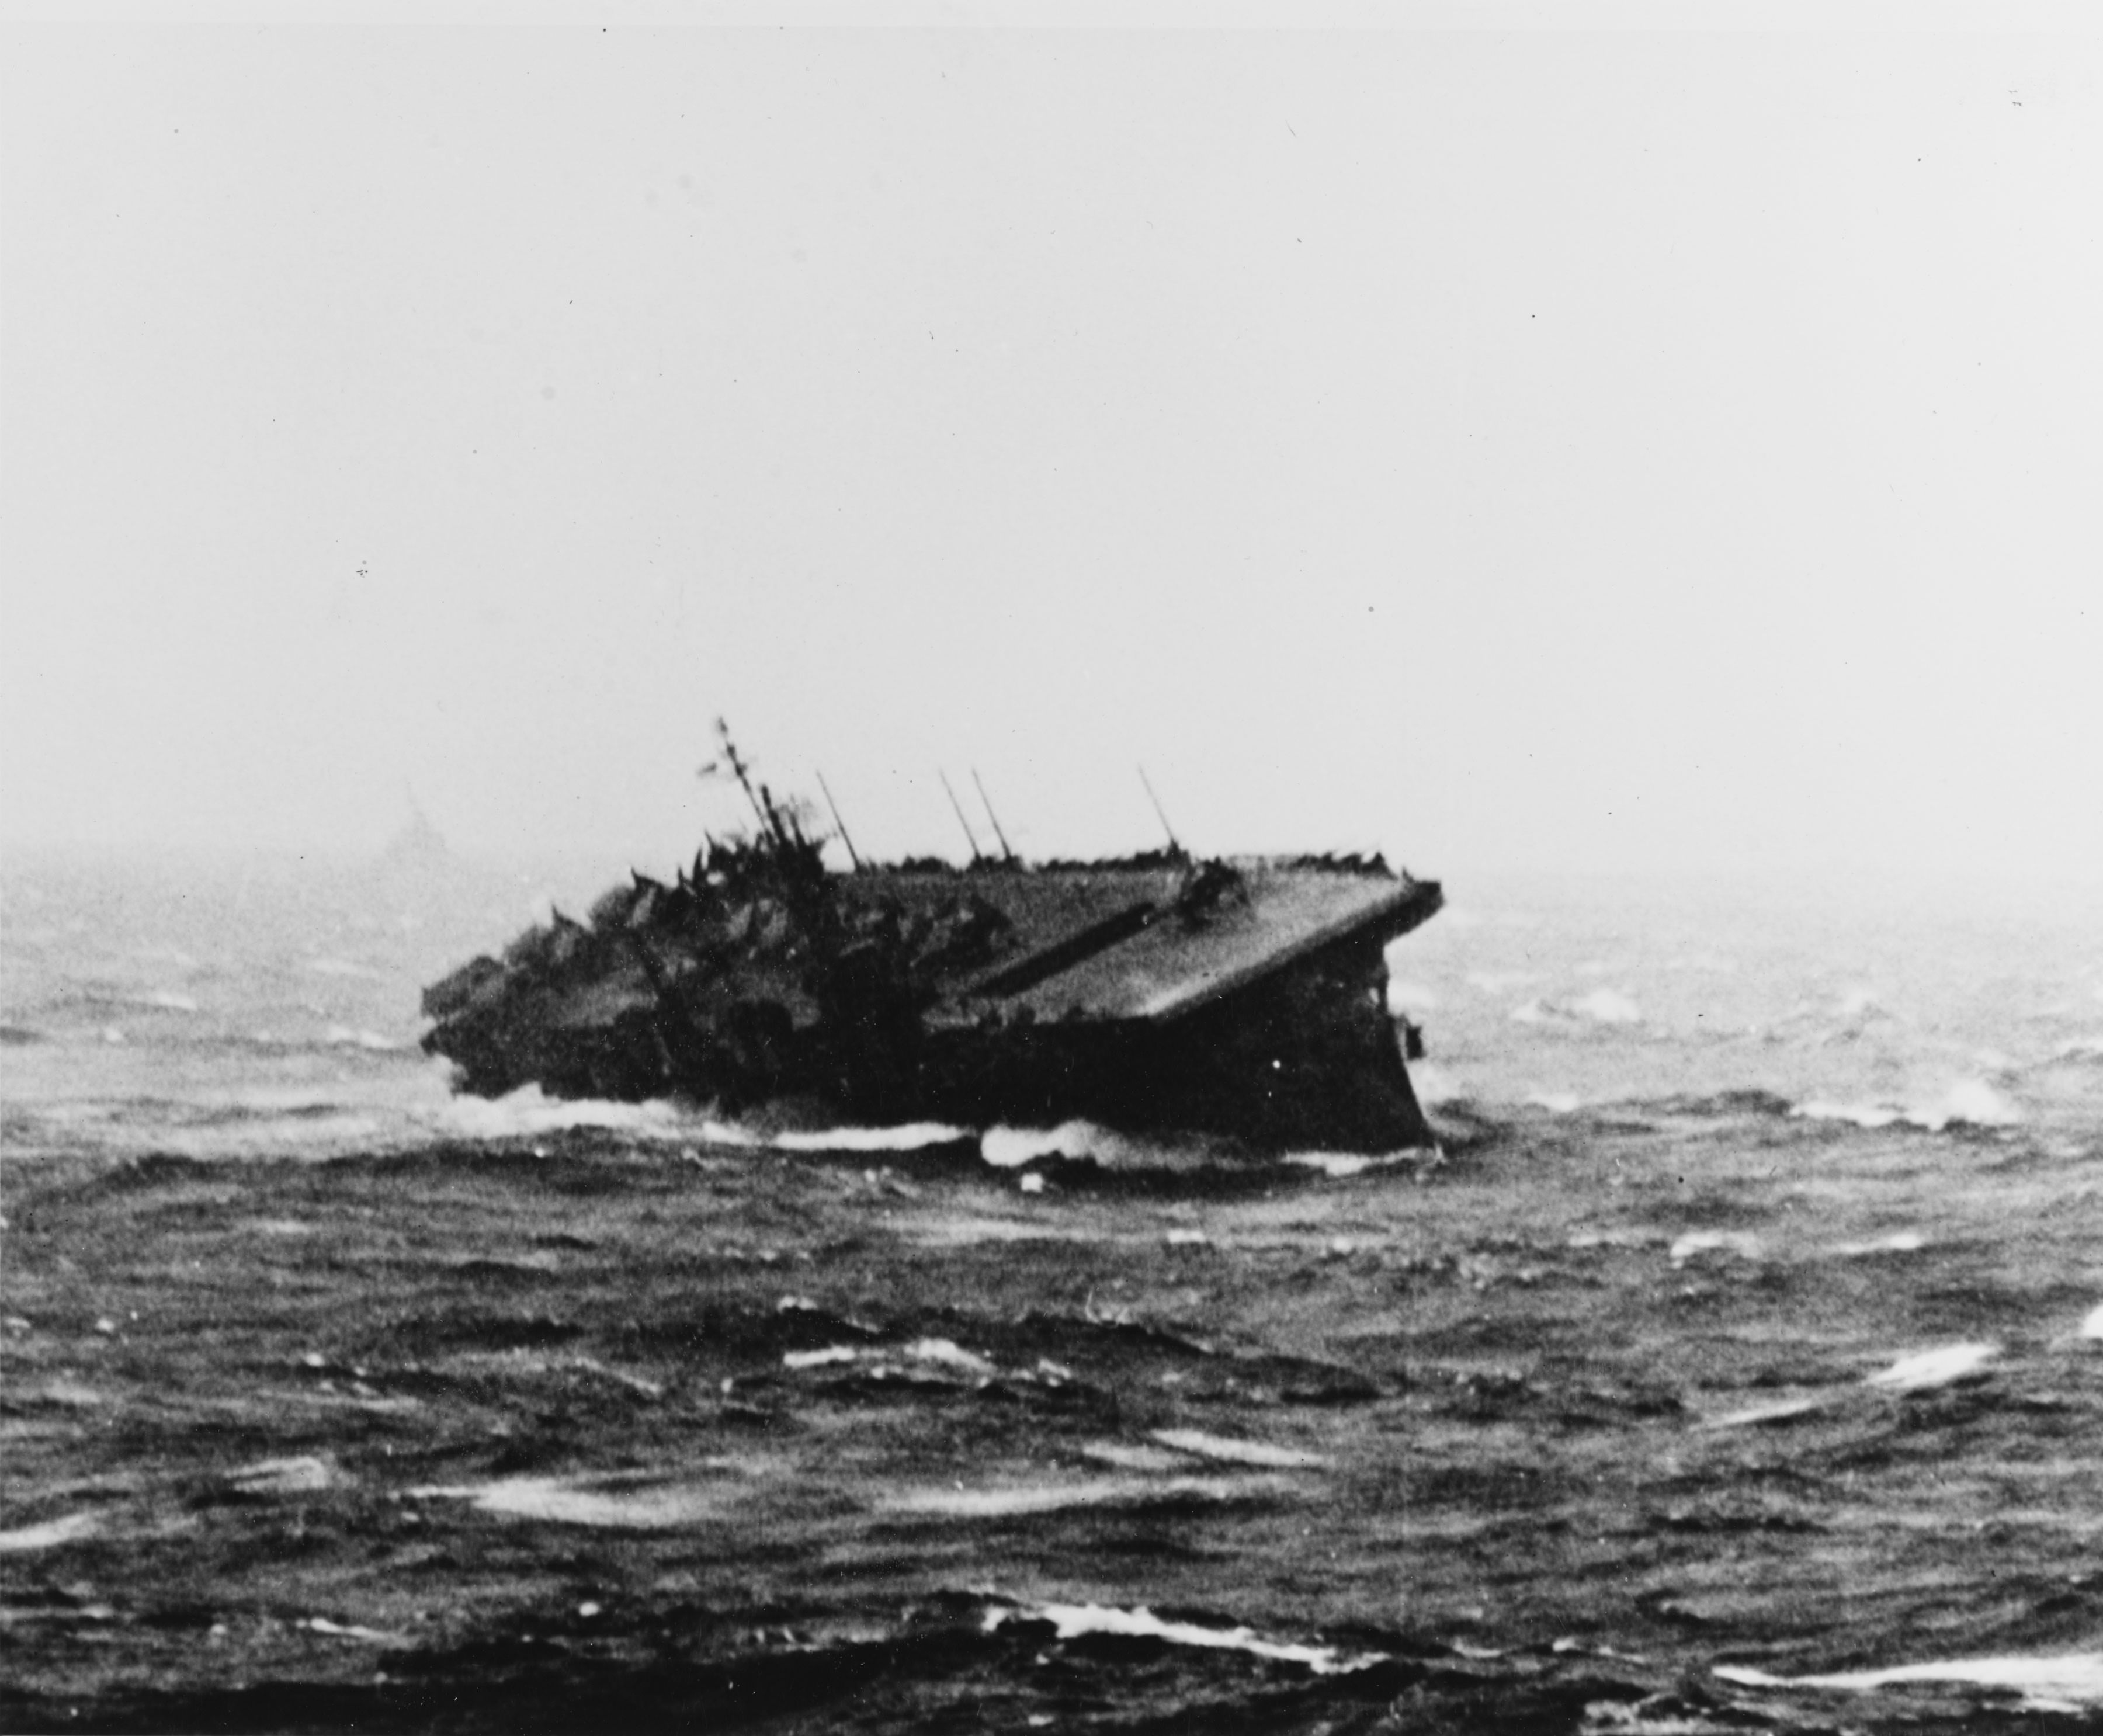 Uss Langley Cvl 27 Rolling Sharply As She Rides Out A Pacific